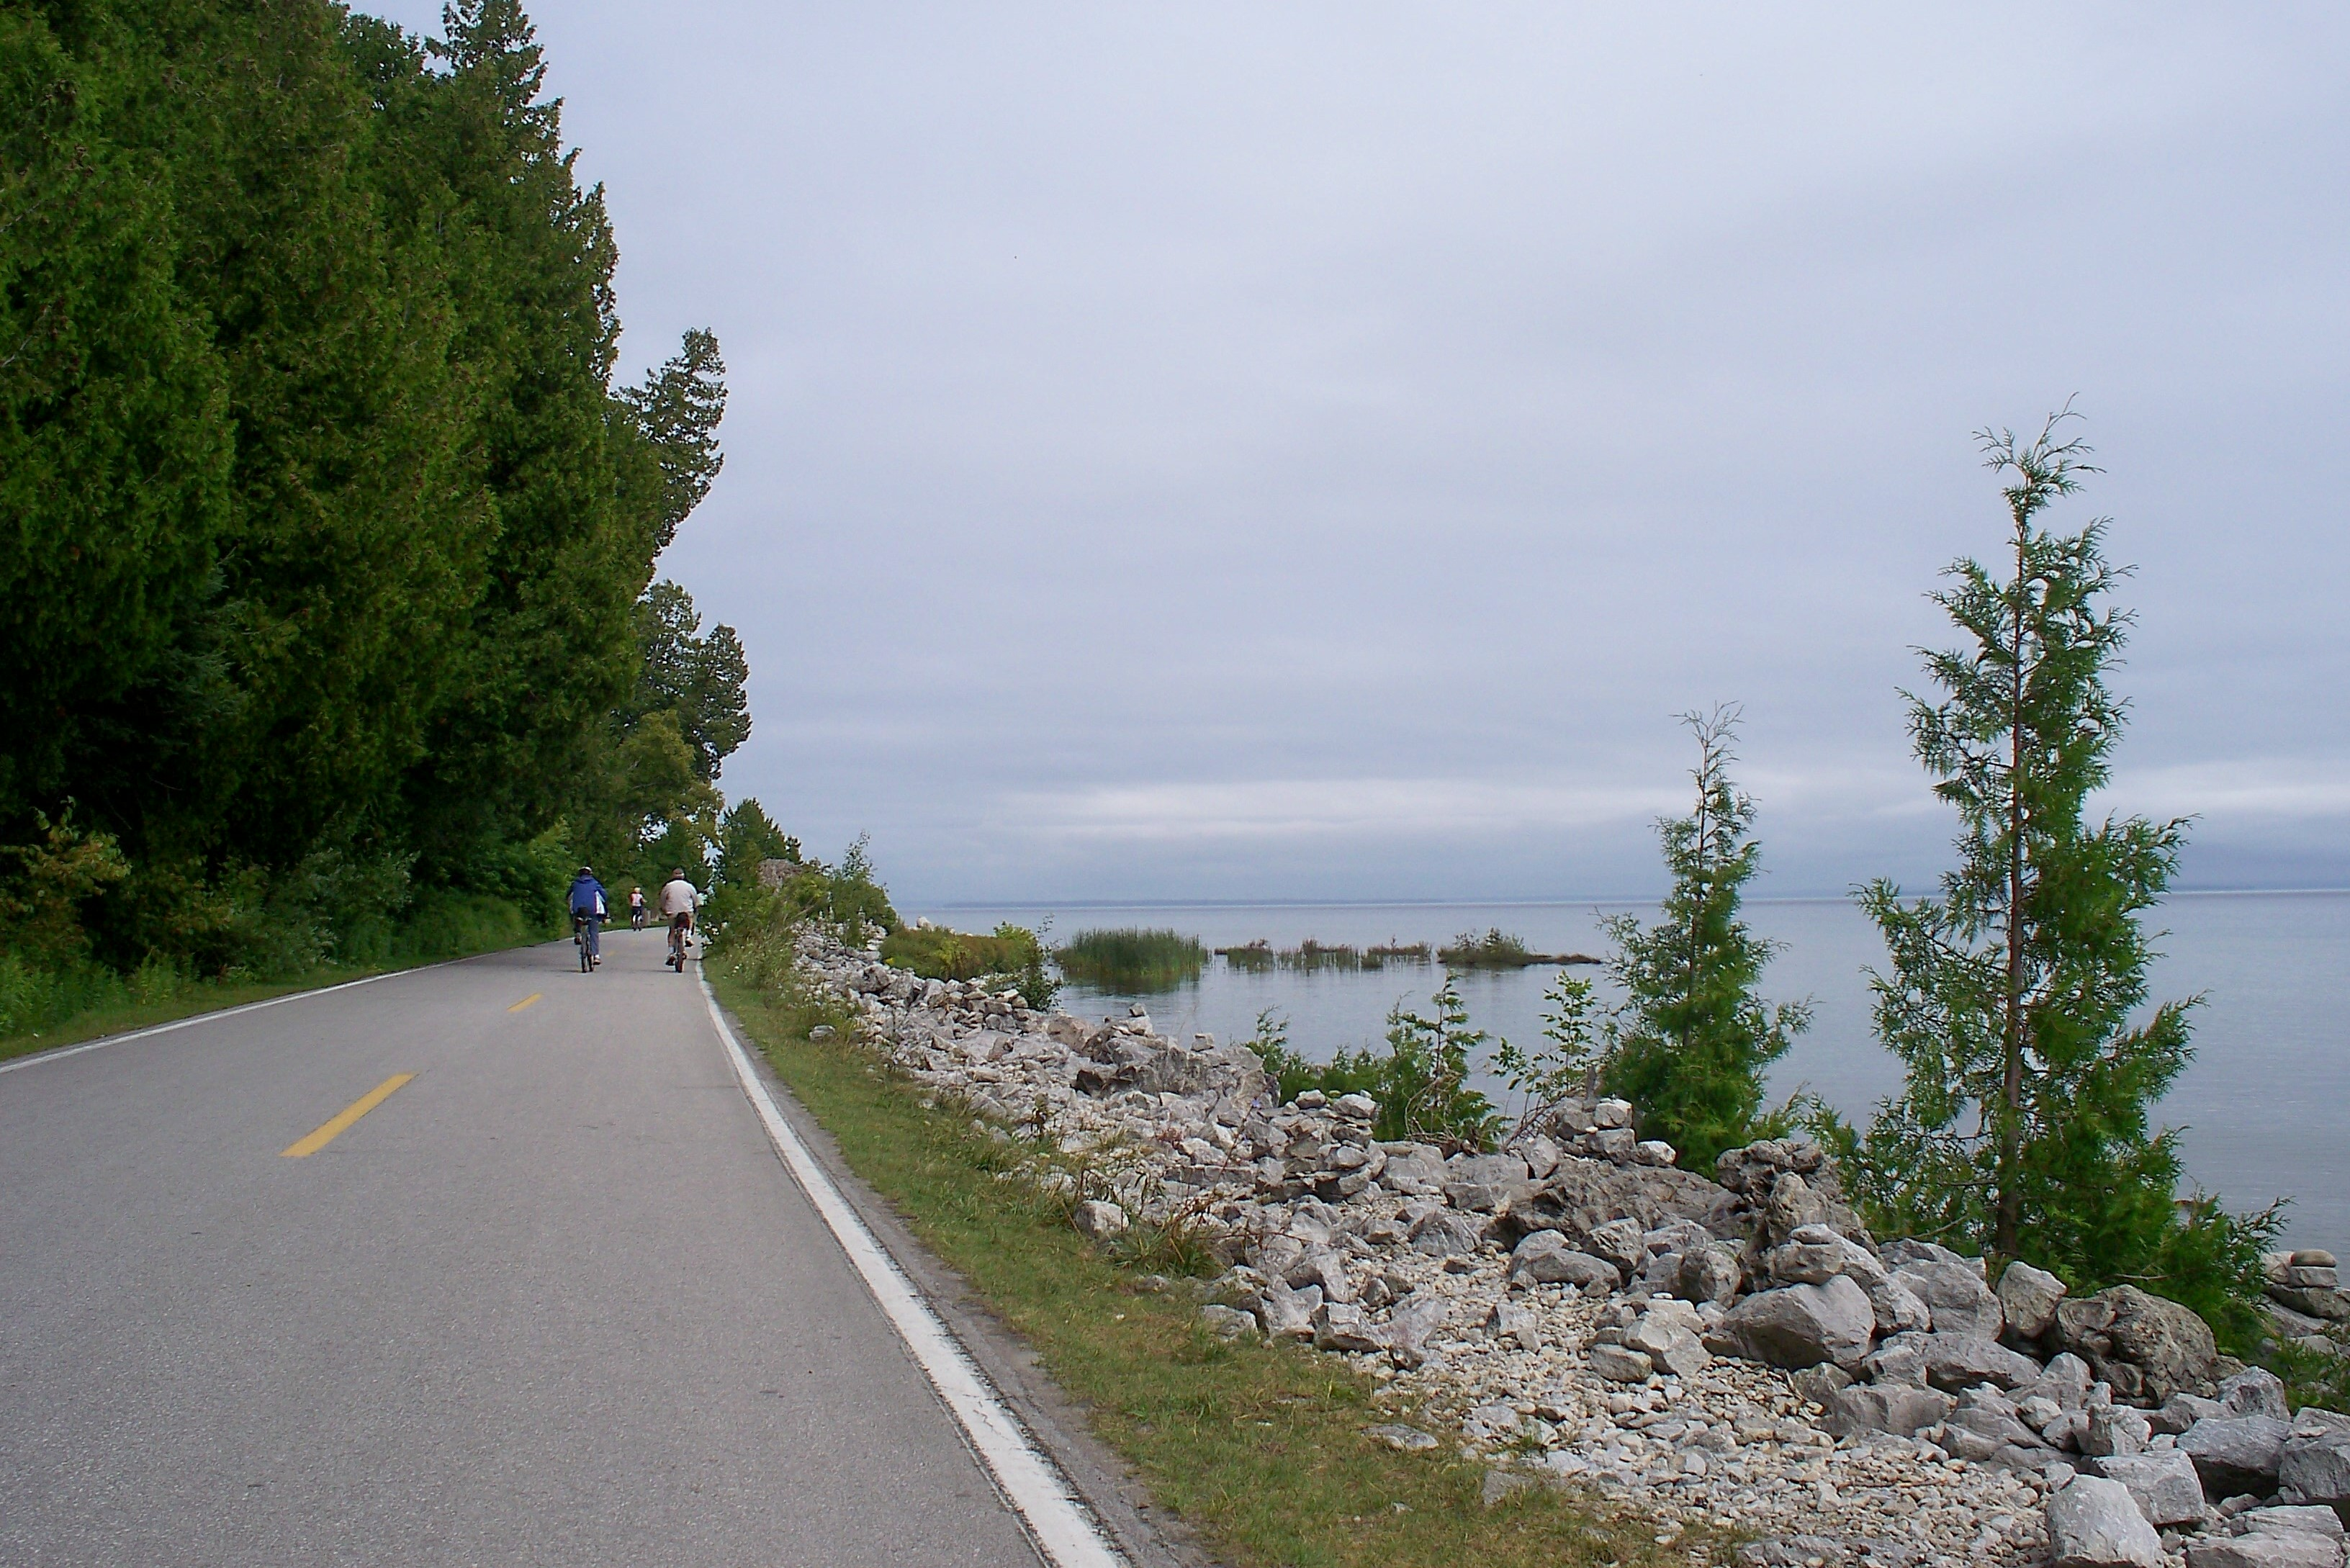 Highway 185 circles Mackinac Island. The easy 8 mile journey offers access to the tougher roads of the interior as well.